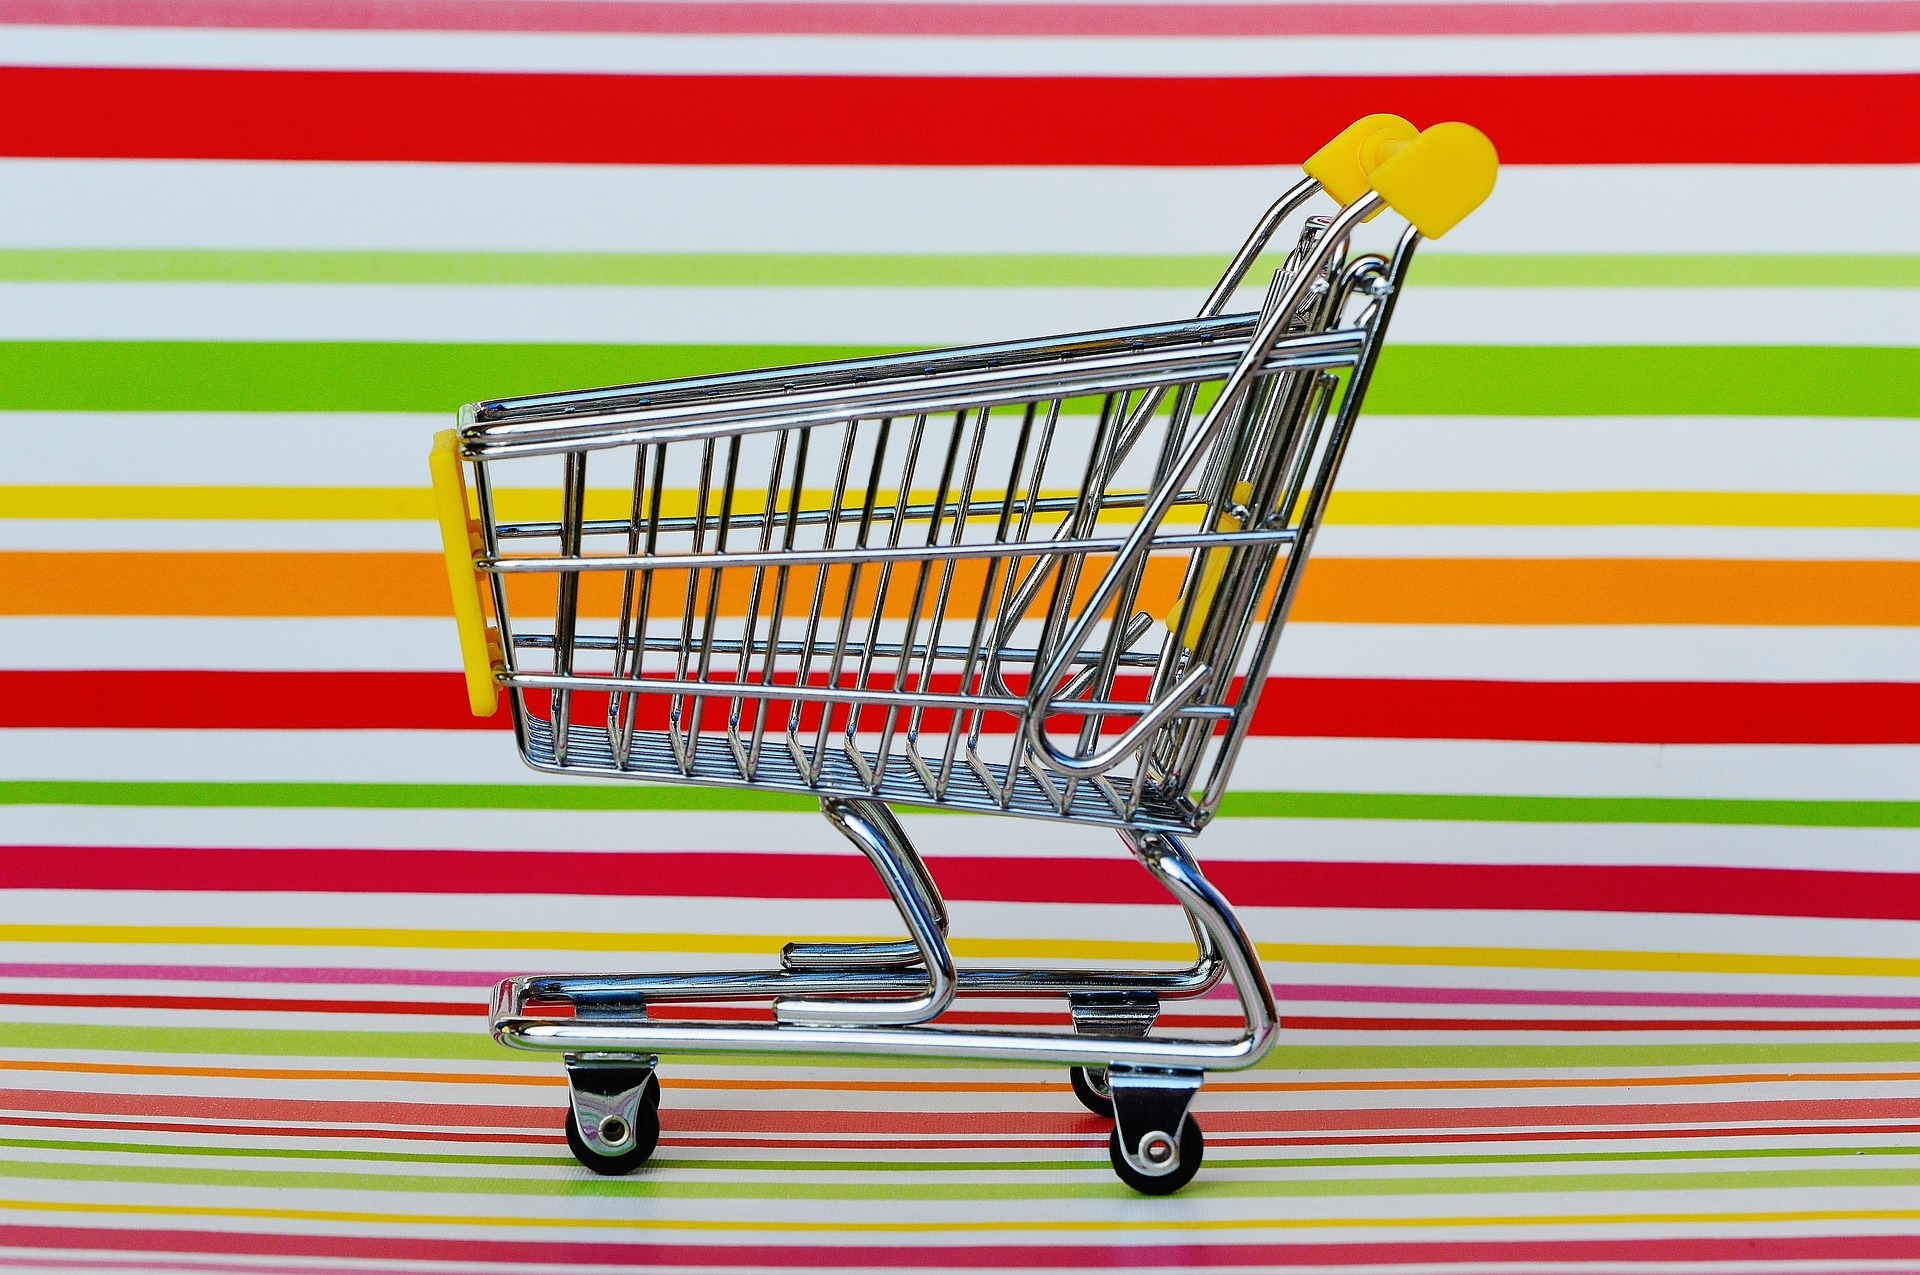 why shopping cart matters